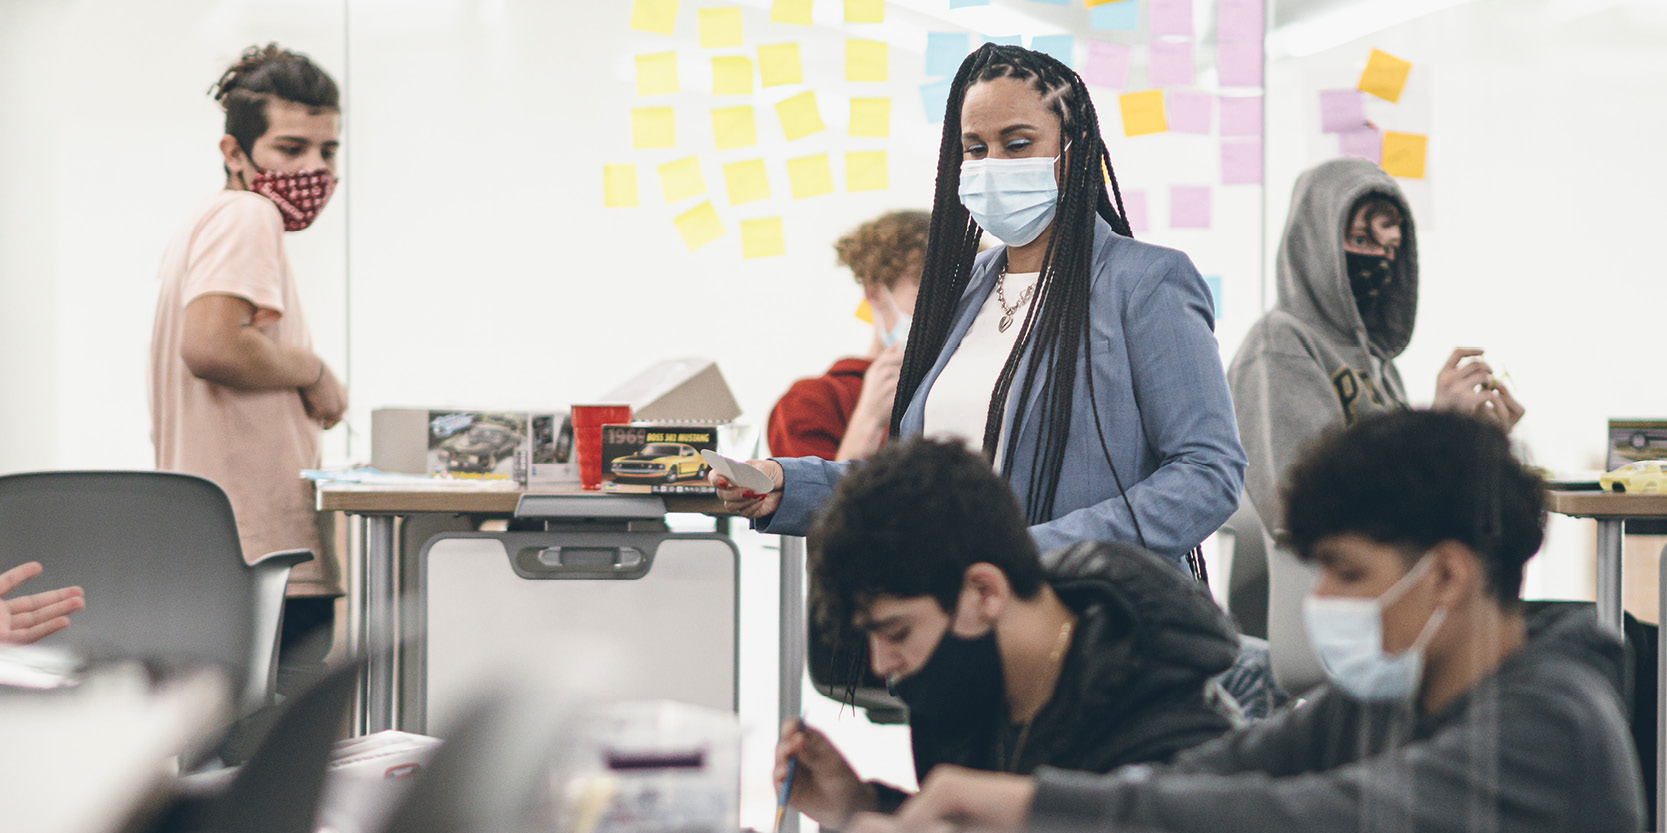 PPHS South Bend Principal Bibi Hardrict oversees progress on a student-directed project, a benefit of small class sizes. (Purdue University photo/Charles Jischke)